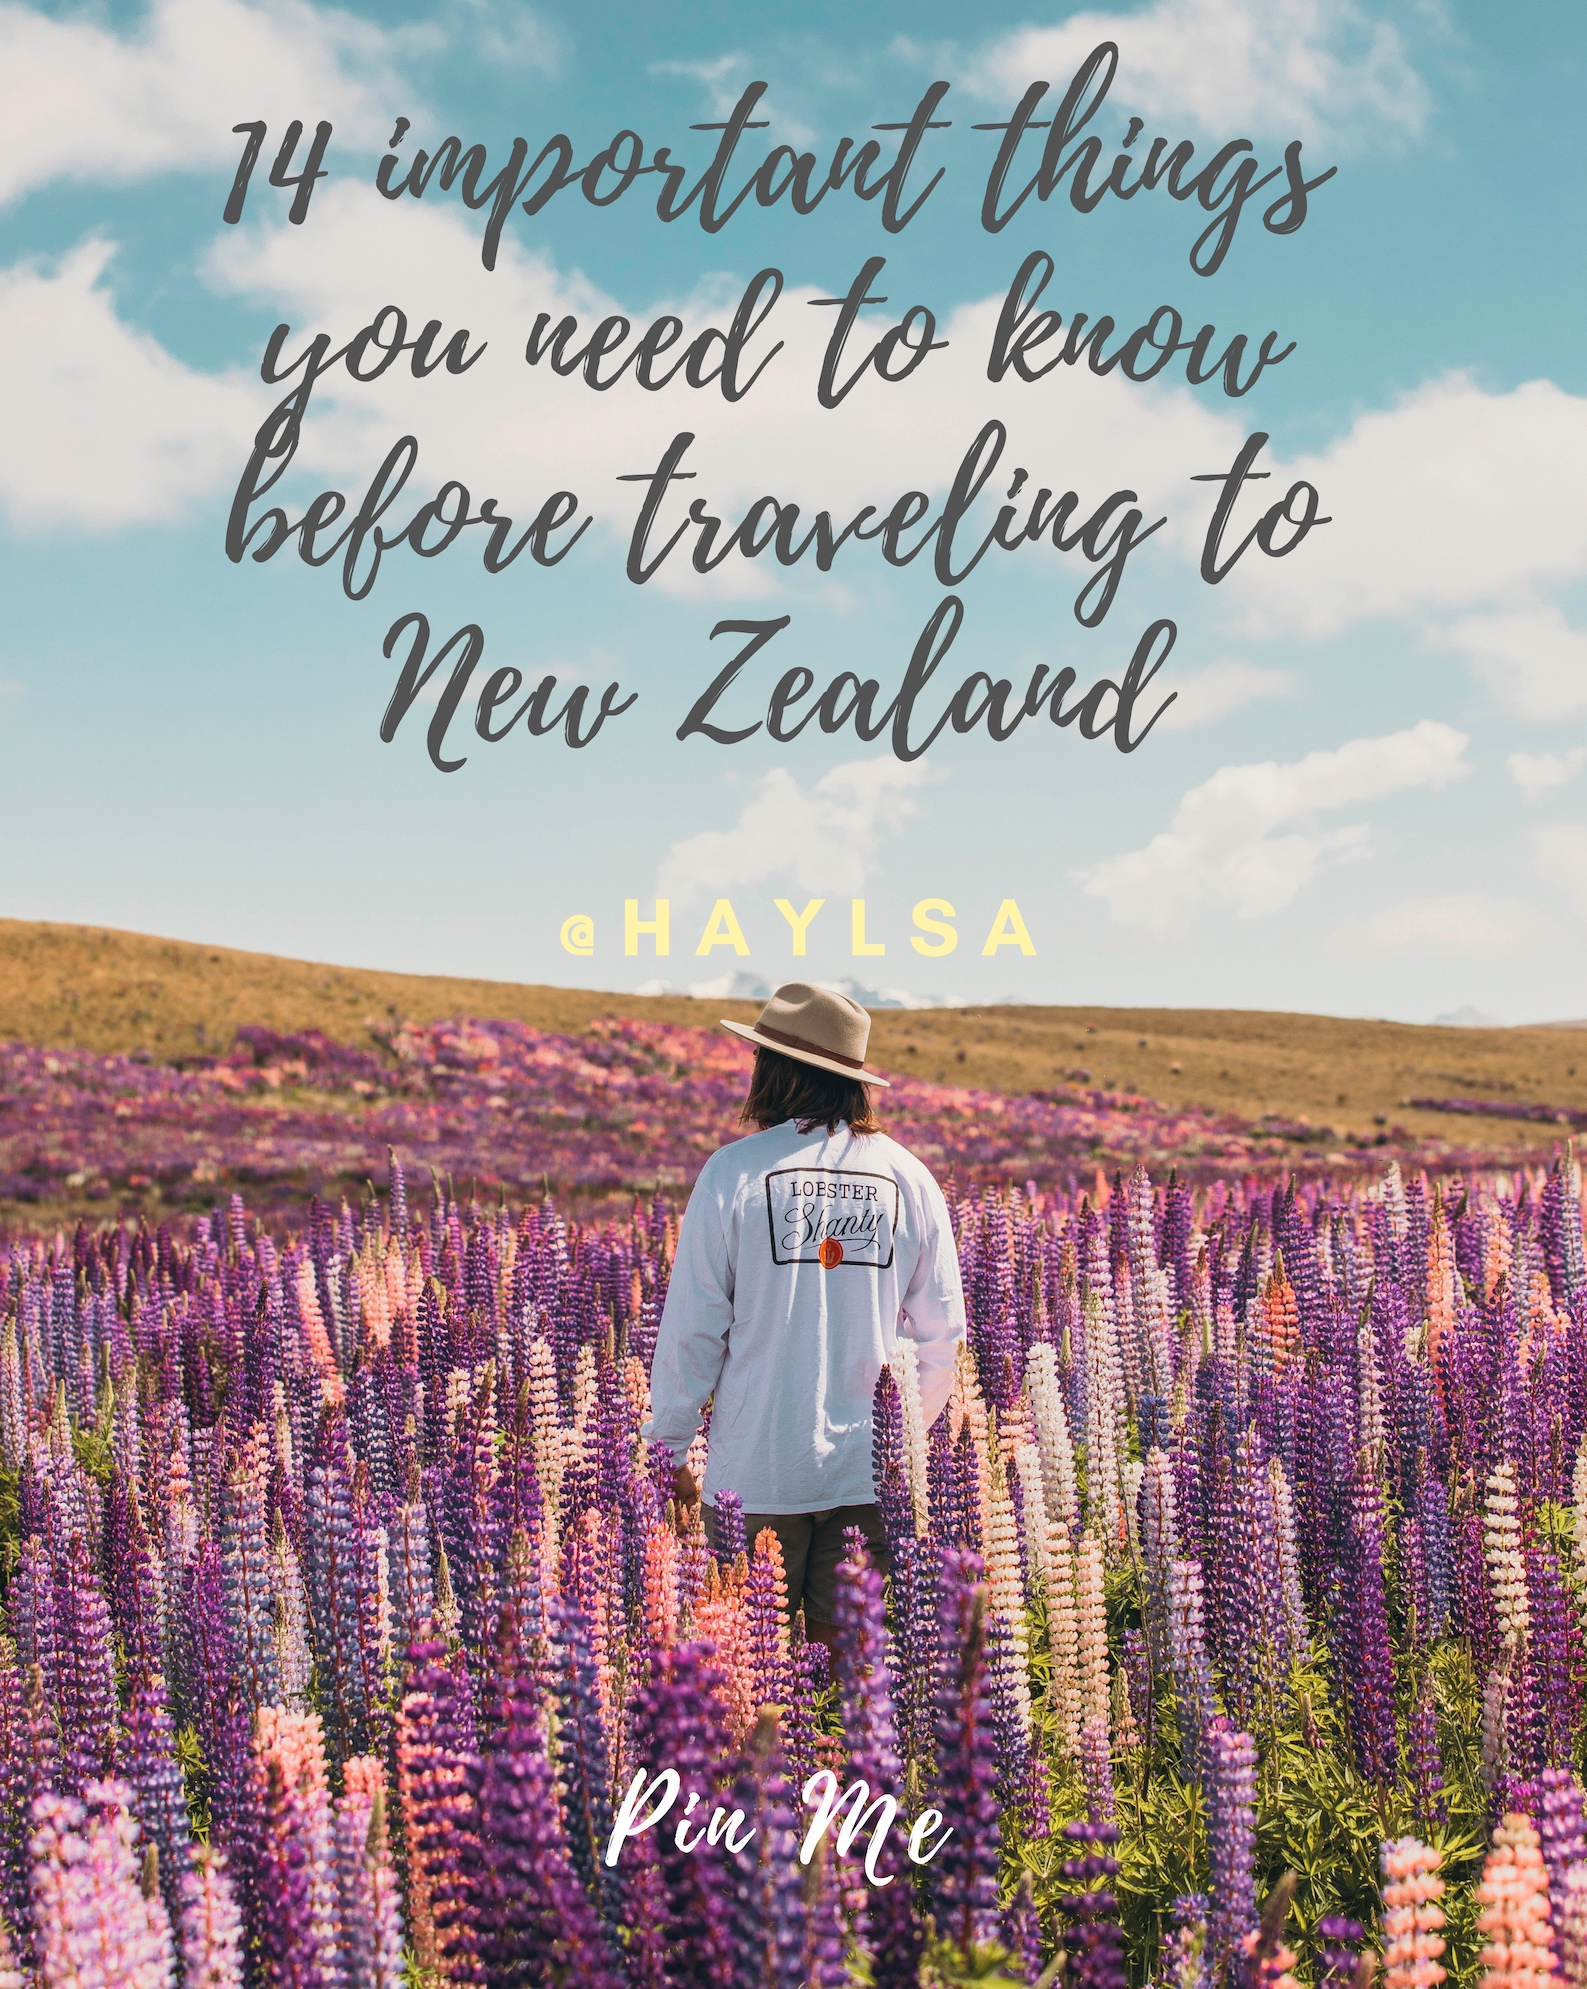 14+things+you+need+to+know+before+traveling+to+New+Zealand-2.jpg